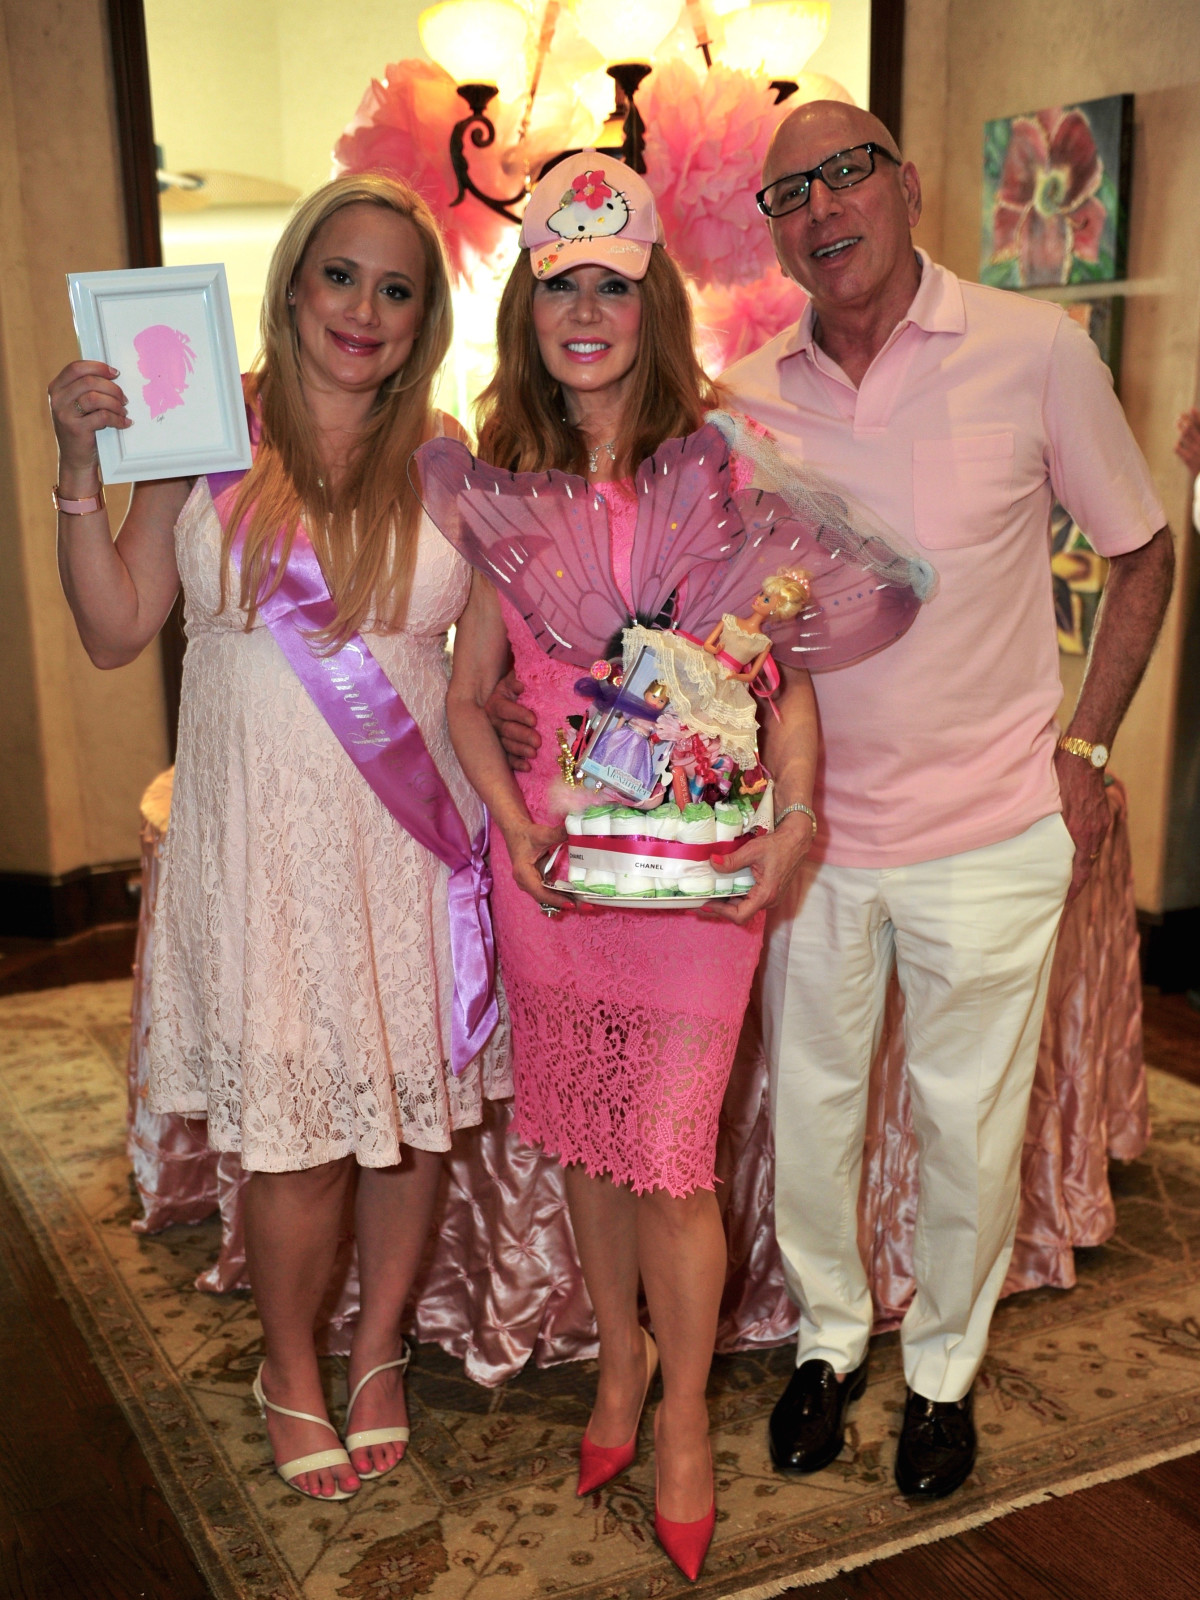 Erica Rose Baby Shower, June 2016, Erica Rose, Cindi Rose, Dr. Franklin Rose